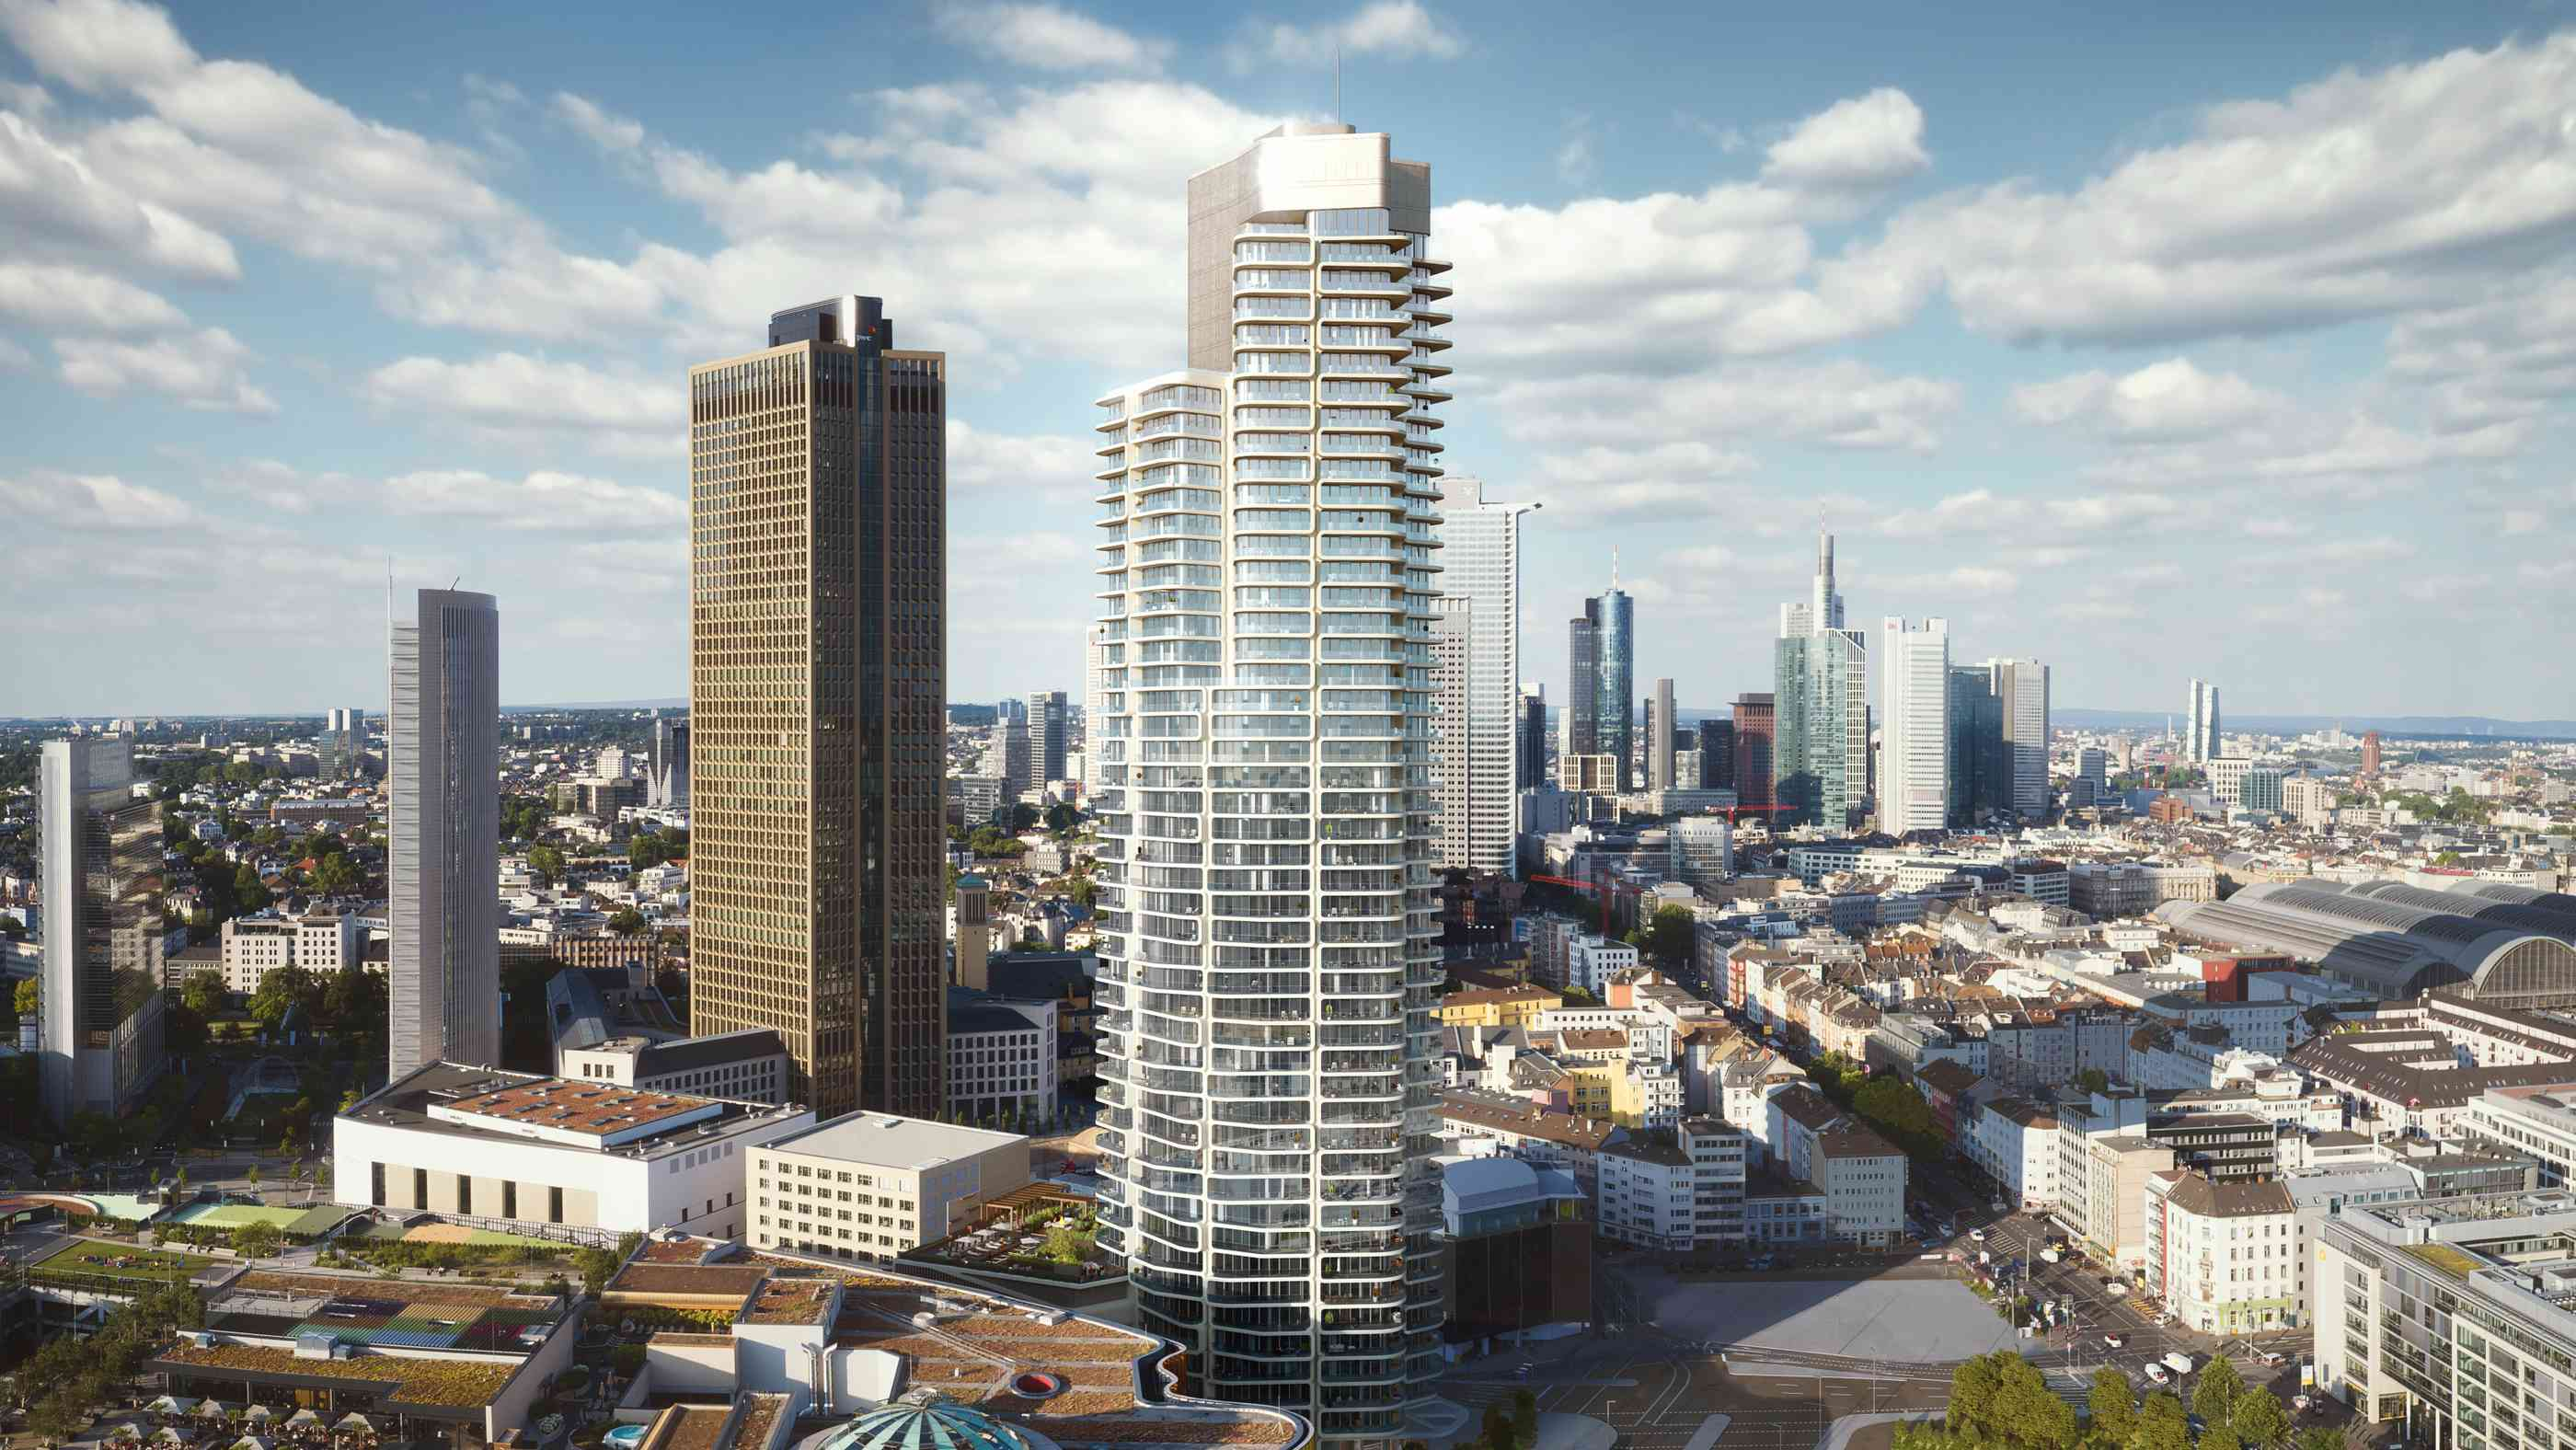 Grand Tower mit der Frankfurter Skyline